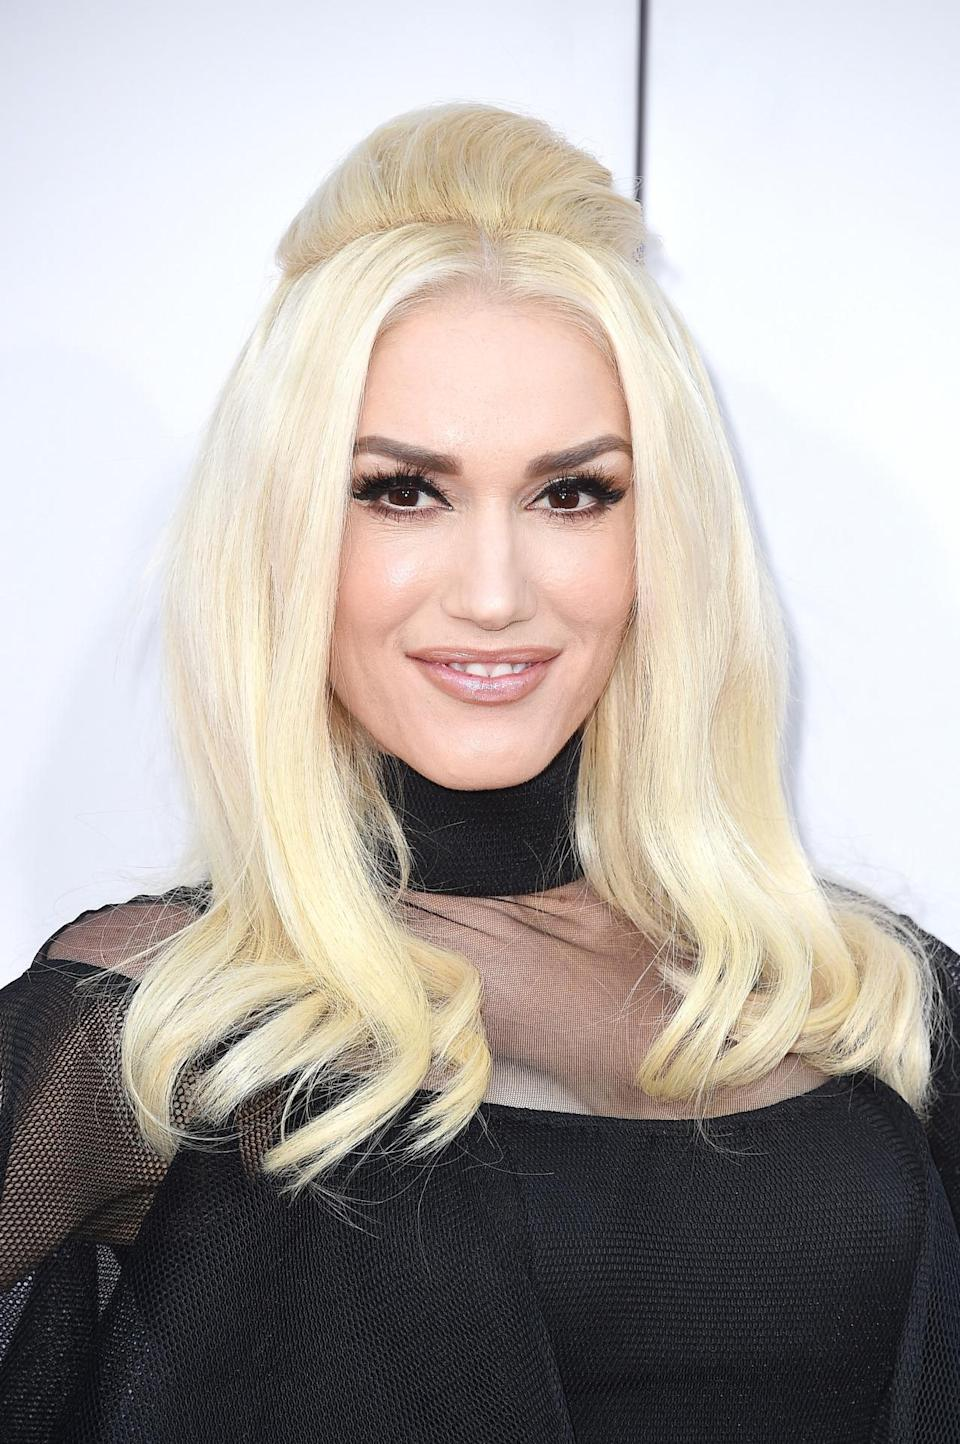 <p>Stefani channeled Priscilla Presley with a '60s beehive style that definitely involved a lot of teasing and possibly required some fake hair.<i> (Photo: Getty Images)</i></p>